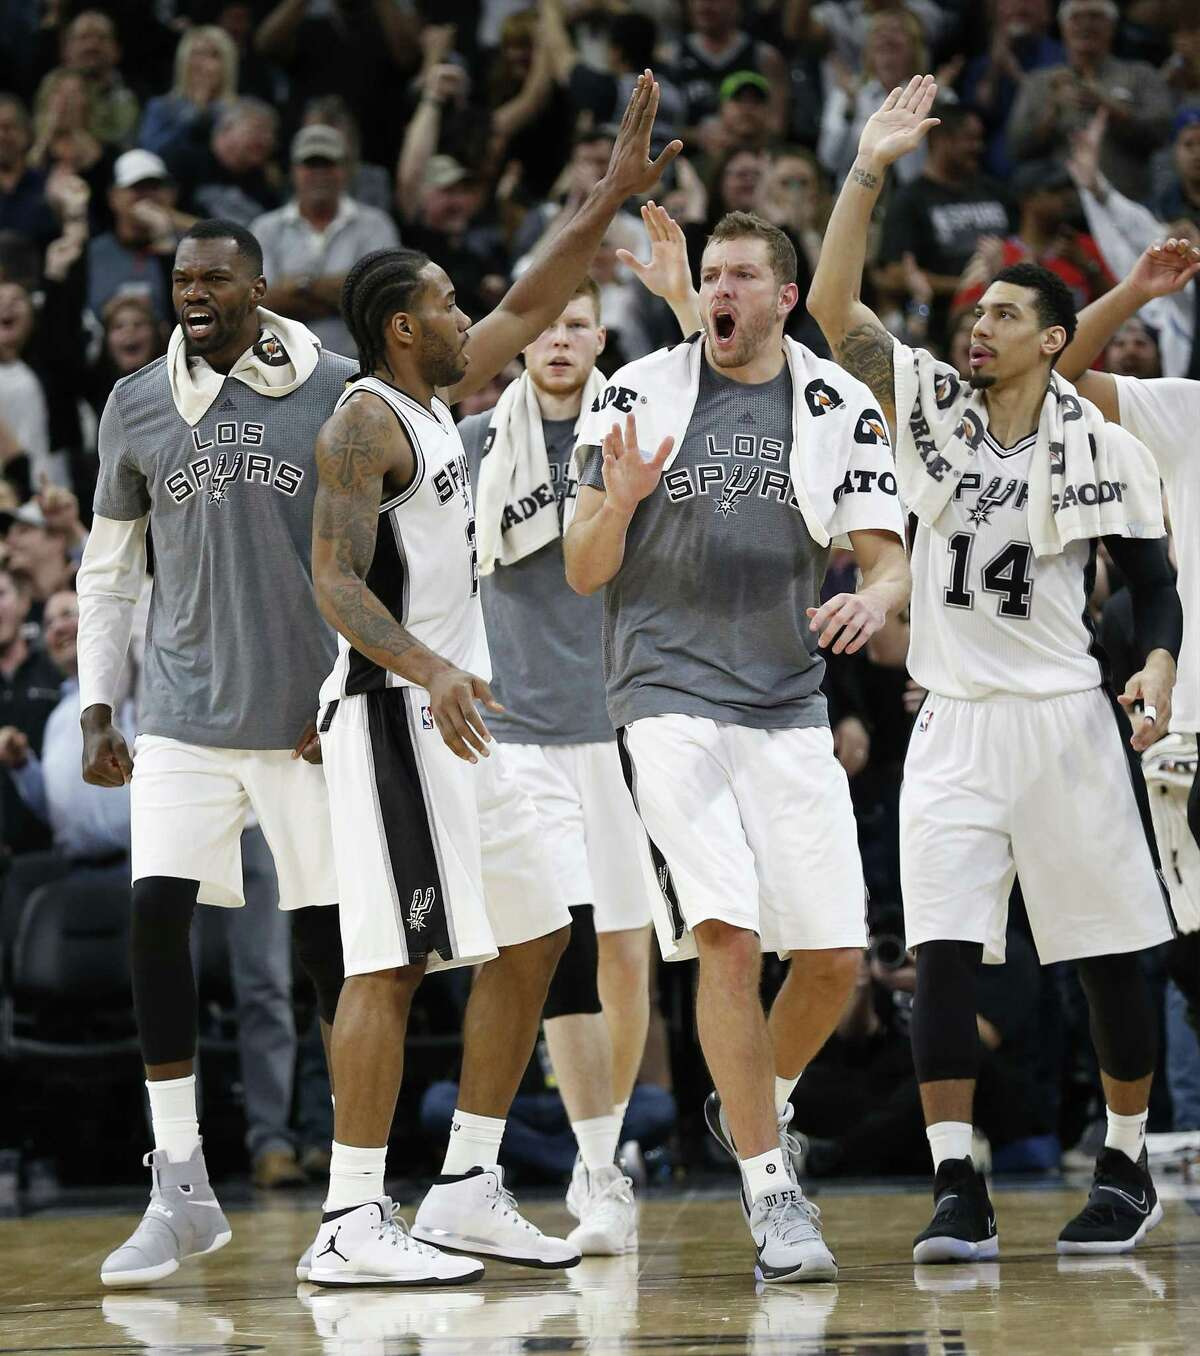 Spurs?' Kawhi Leonard (02) gets congratulated by the team bench after hitting the winning shot against the Indiana Pacers at the AT&T Center on Wednesday, Mar. 1, 2017. Spurs defeated the Pacers, 100-99. (Kin Man Hui/San Antonio Express-News)